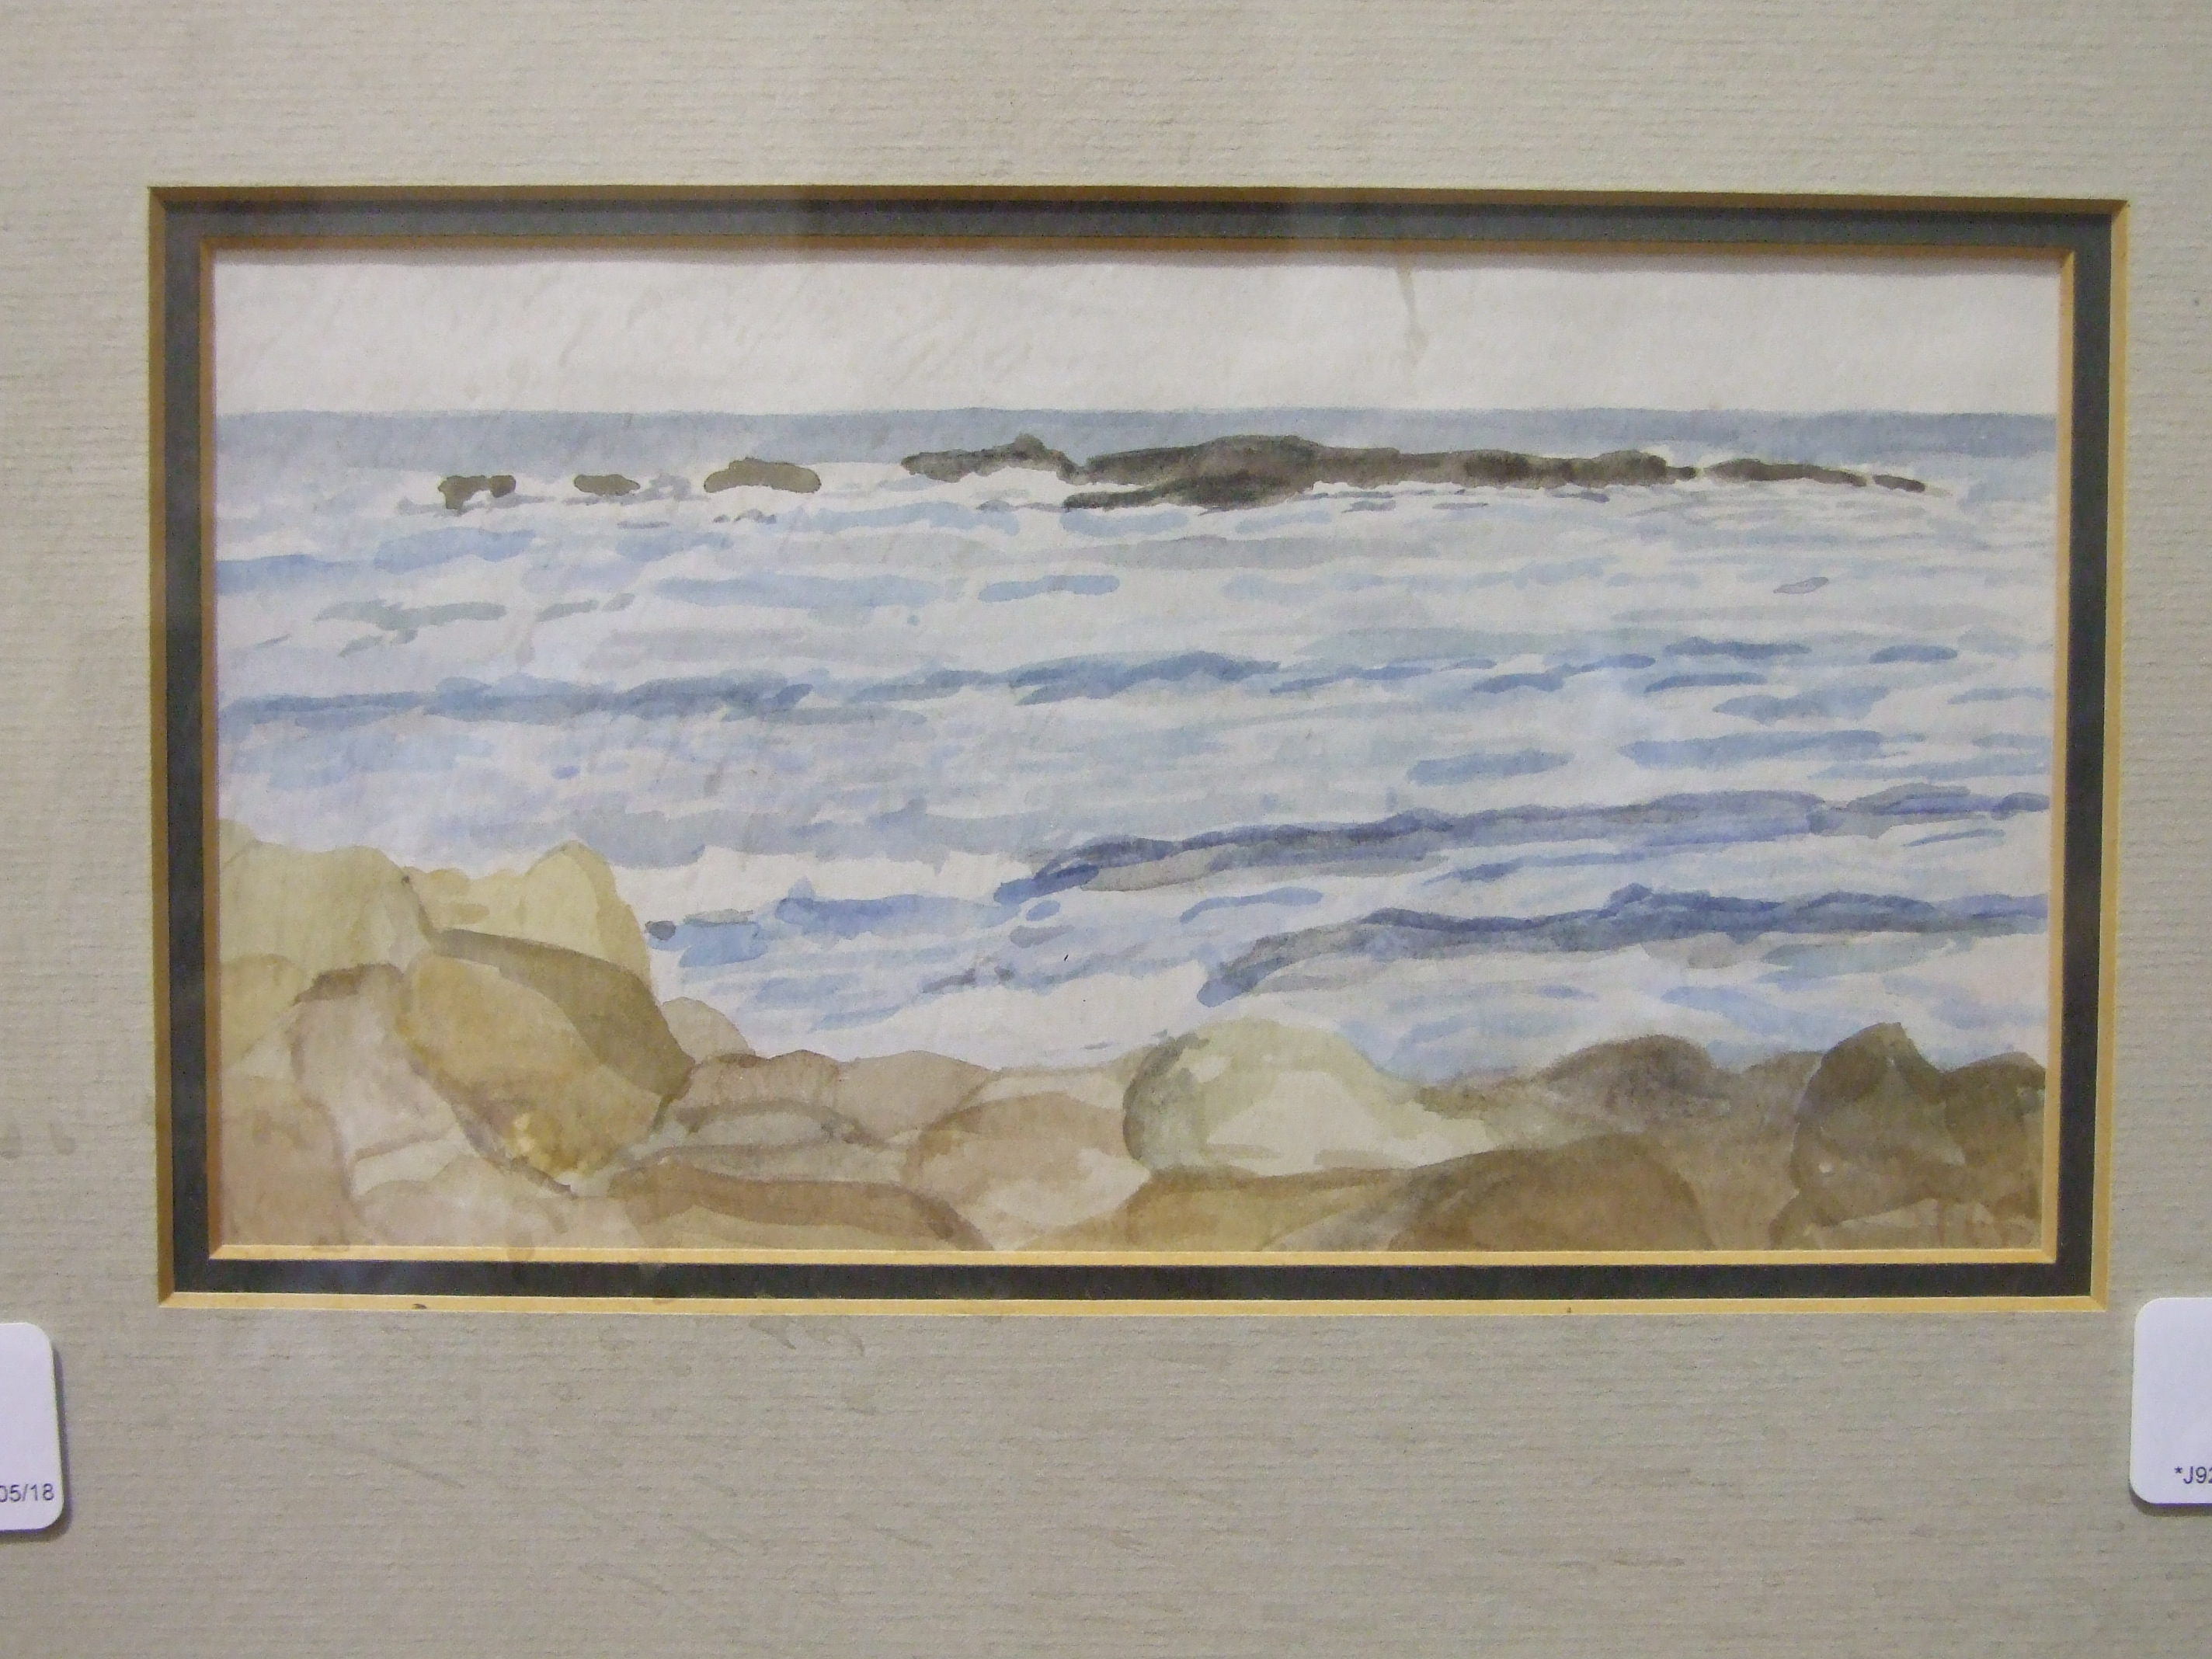 T C Gotch WAVES BREAKING ON A SHORELINE Watercolour sketch, signed with initials, 10 x 19cm,